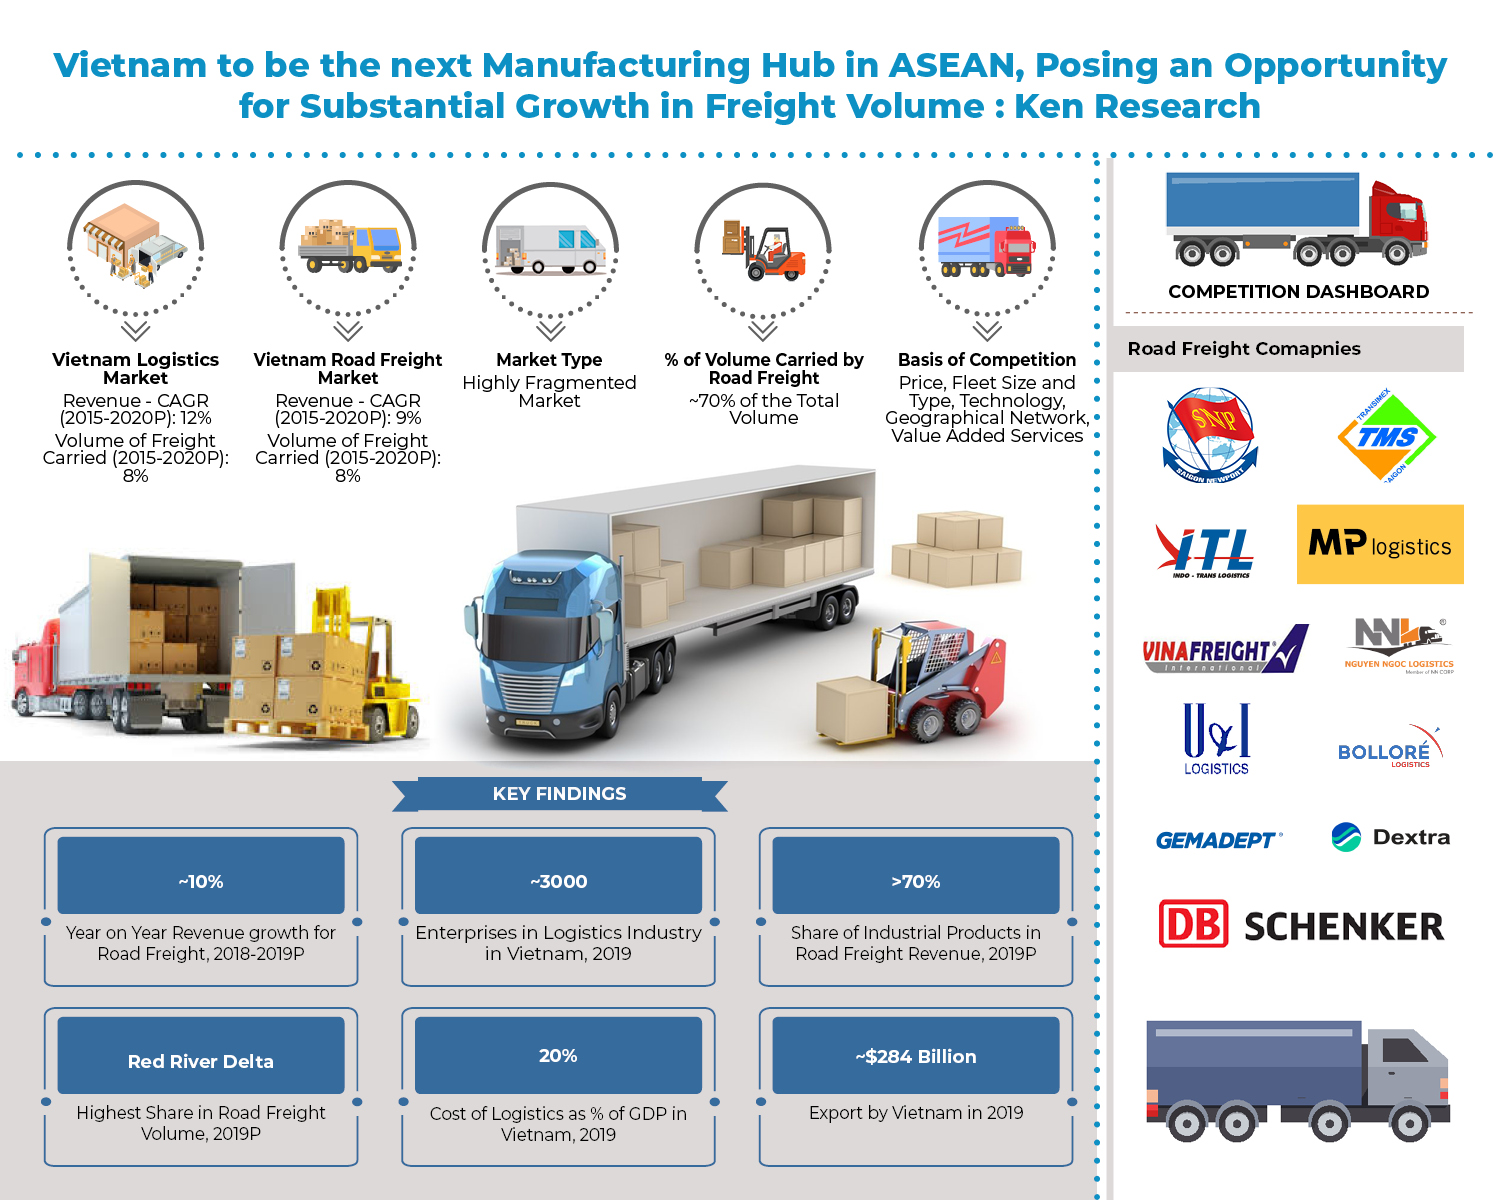 Rapid Growth of Manufacturing Industry and Developing Logistics Infrastructure to Drive the Road Freight Market in Vietnam: Ken Research